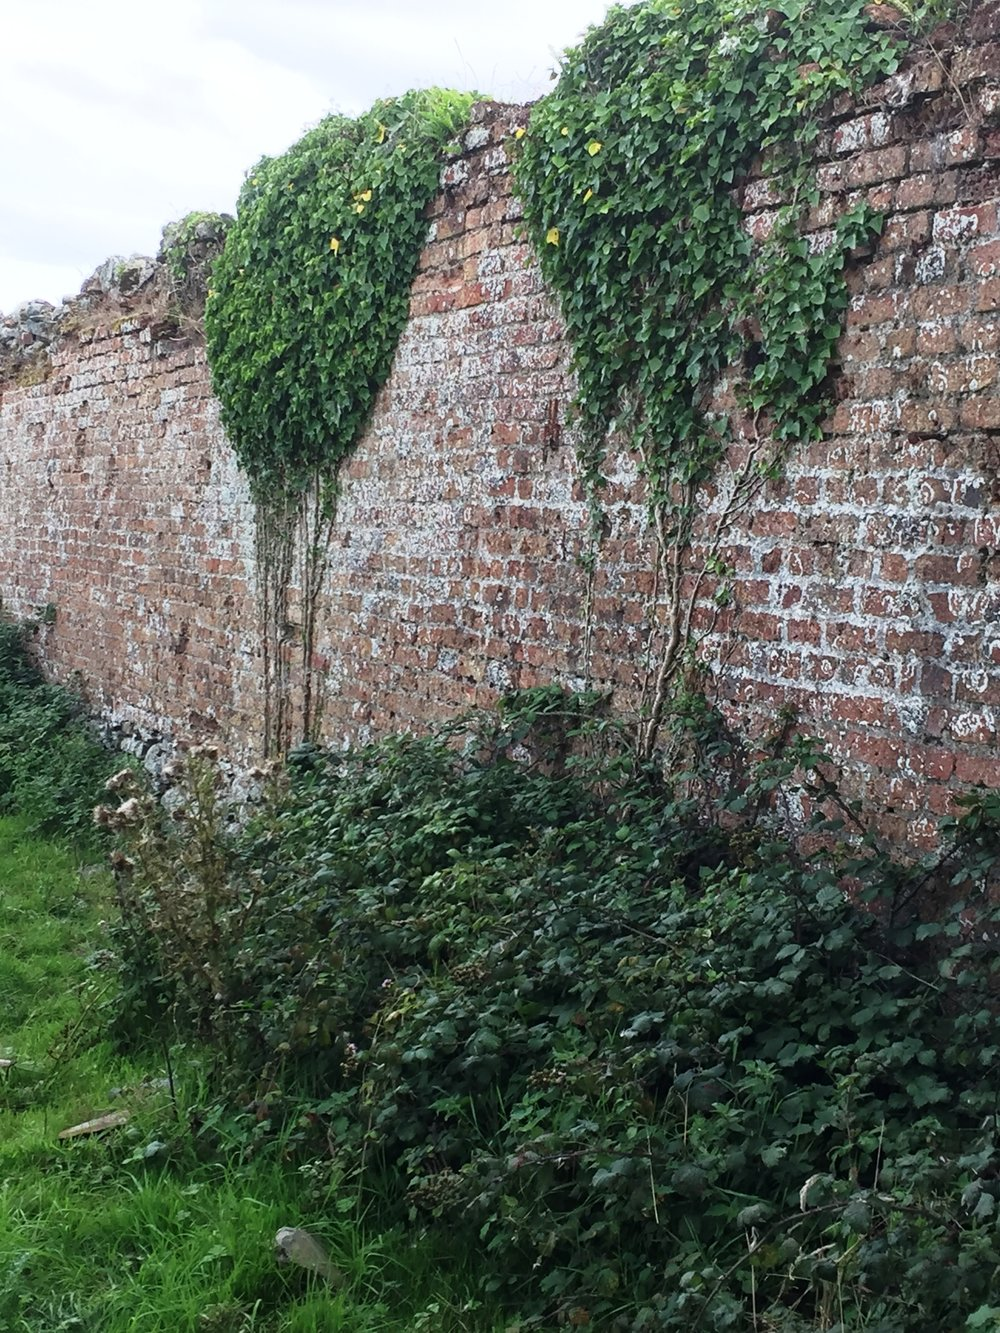 Ivy And Brambles Scramble Up The Walls But They Remain Solid